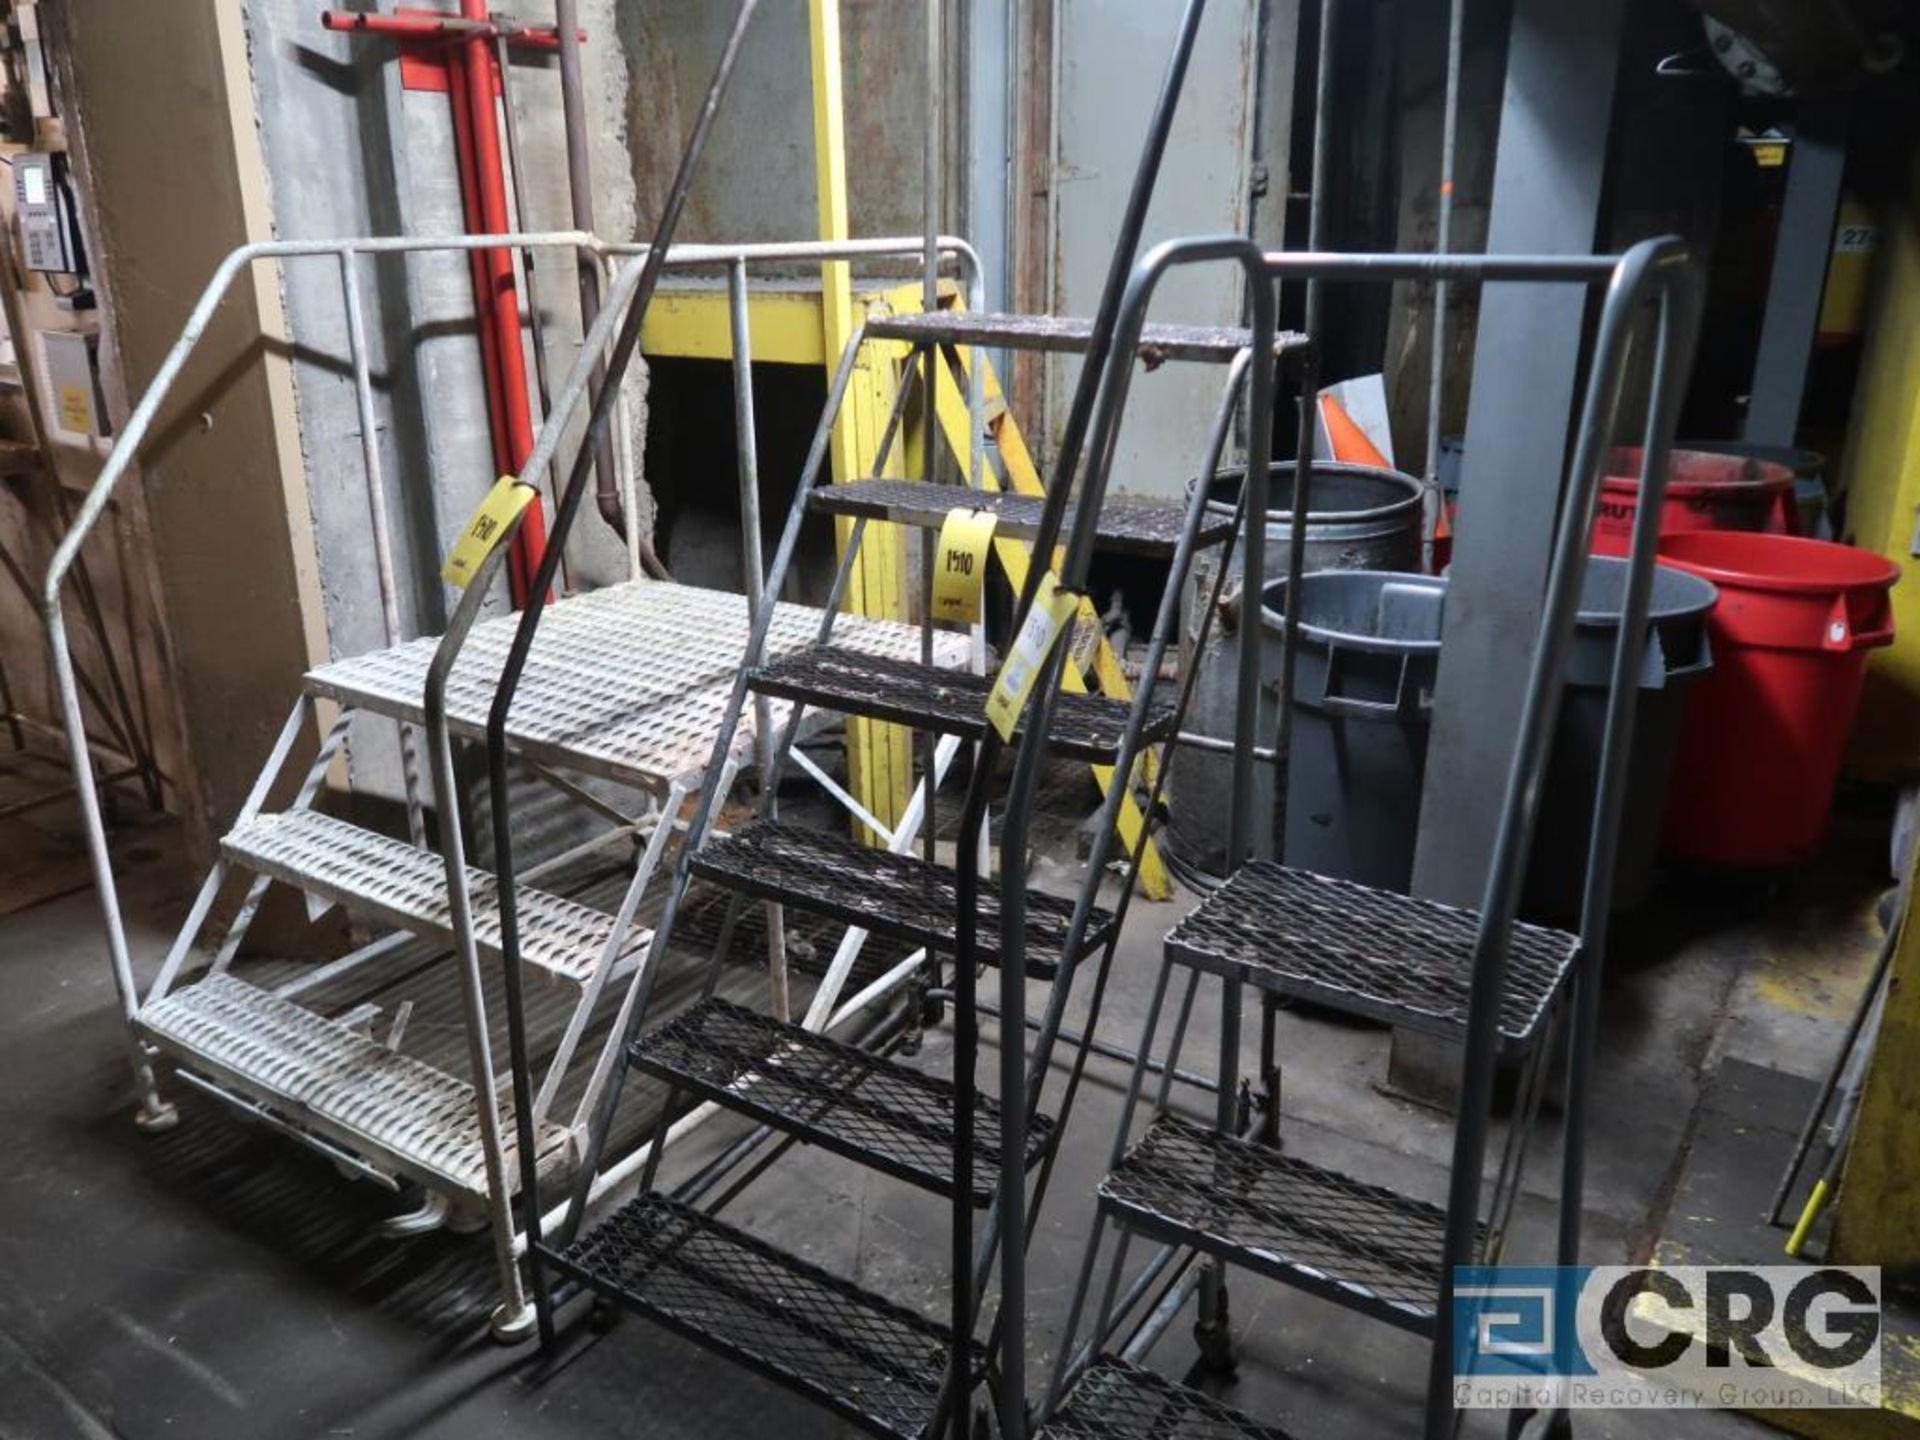 Lot of (7) safety ladders including (2) 3 step, (1) 2 step with work platform, and (3) 4 step (